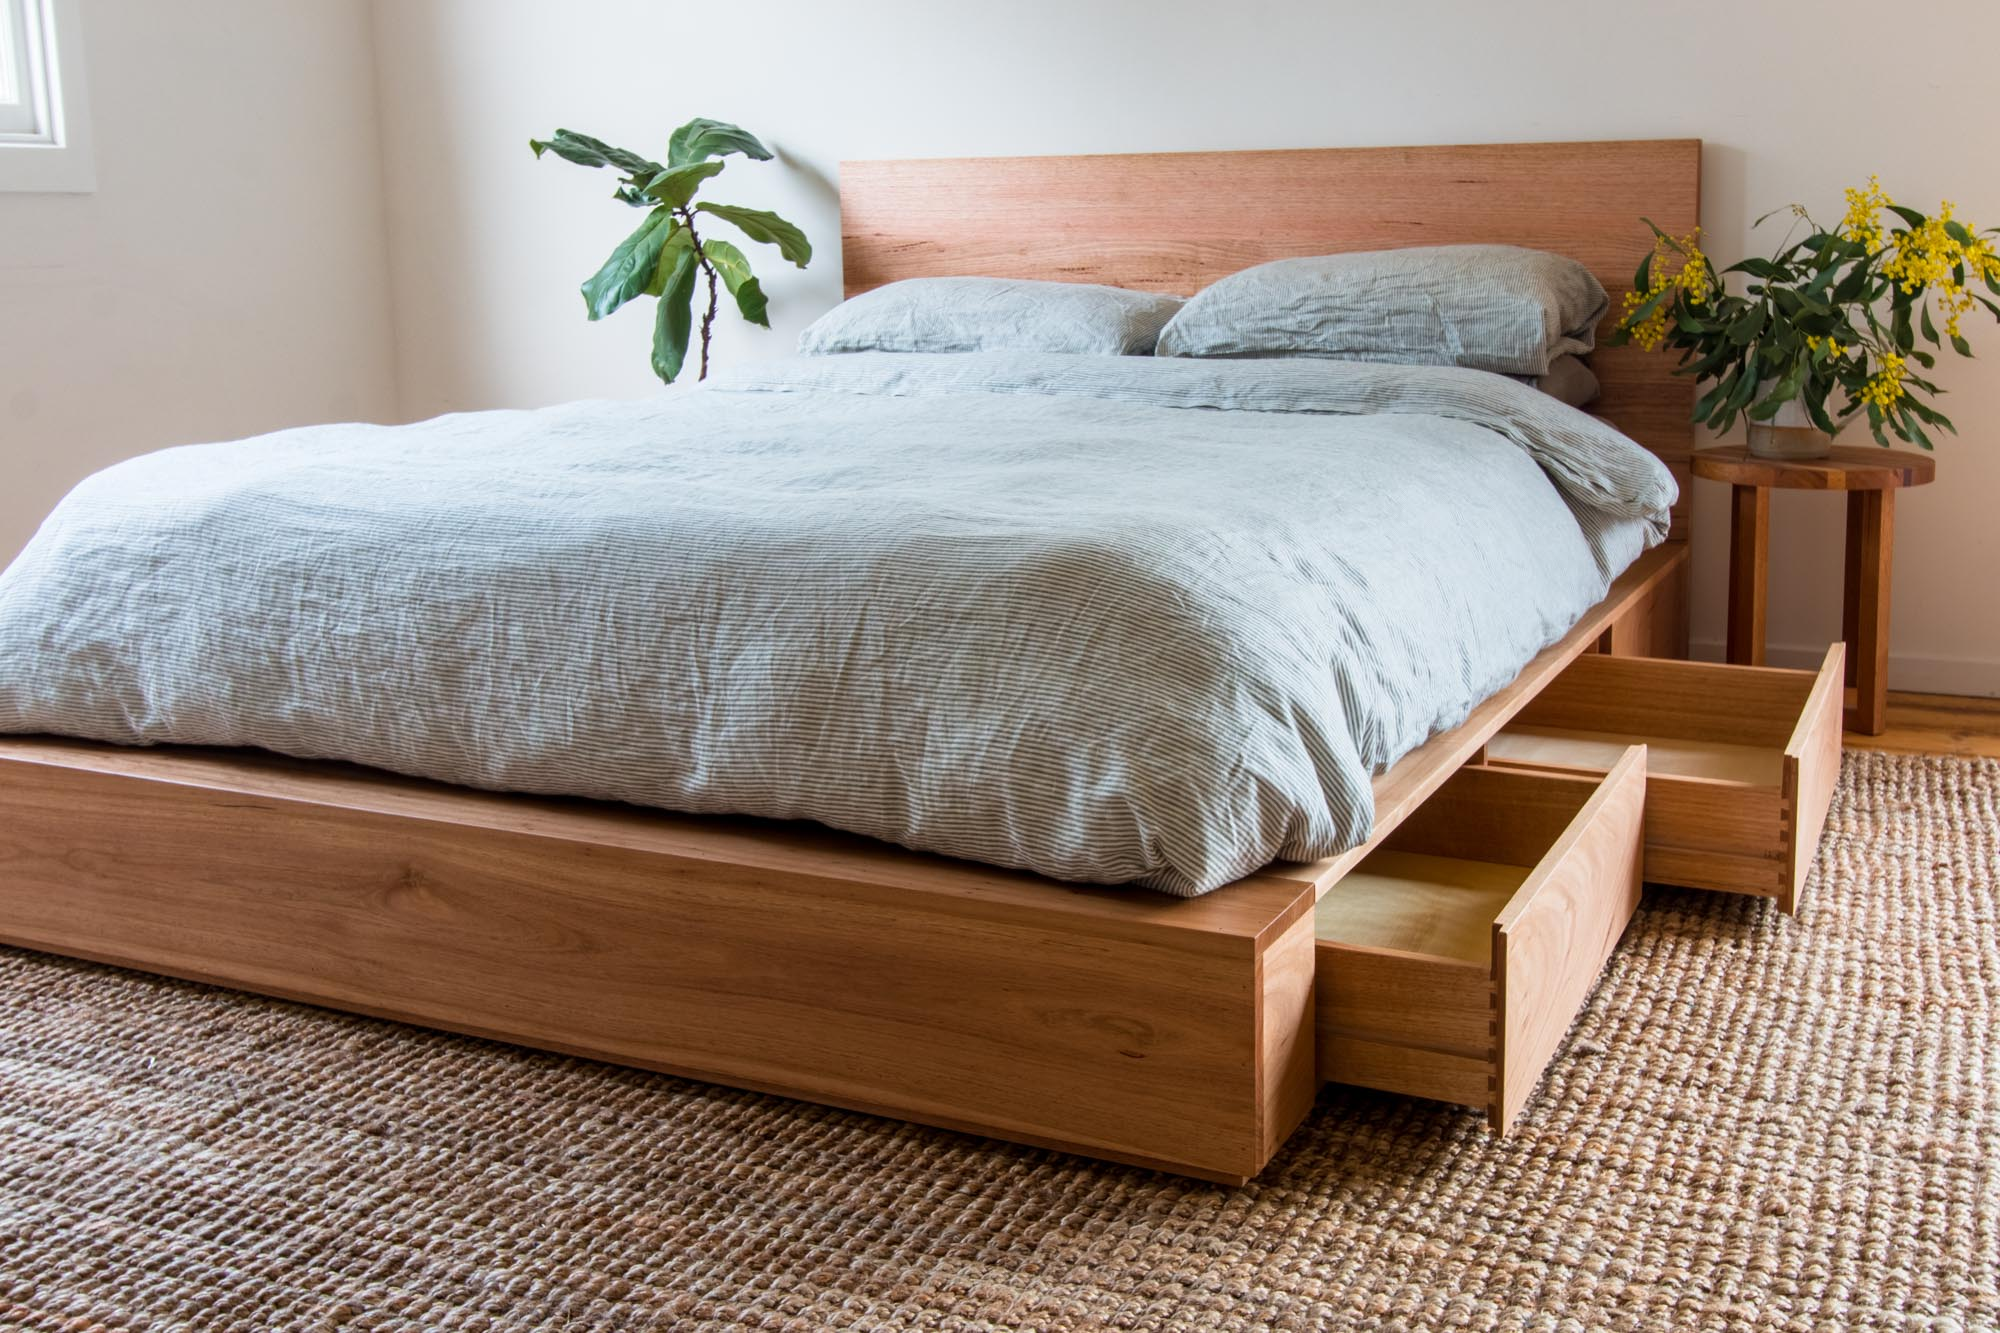 Al and Imo Handmade - Recycled Timber Platform Bed with drawers - Melbourne - Australia-3.jpg